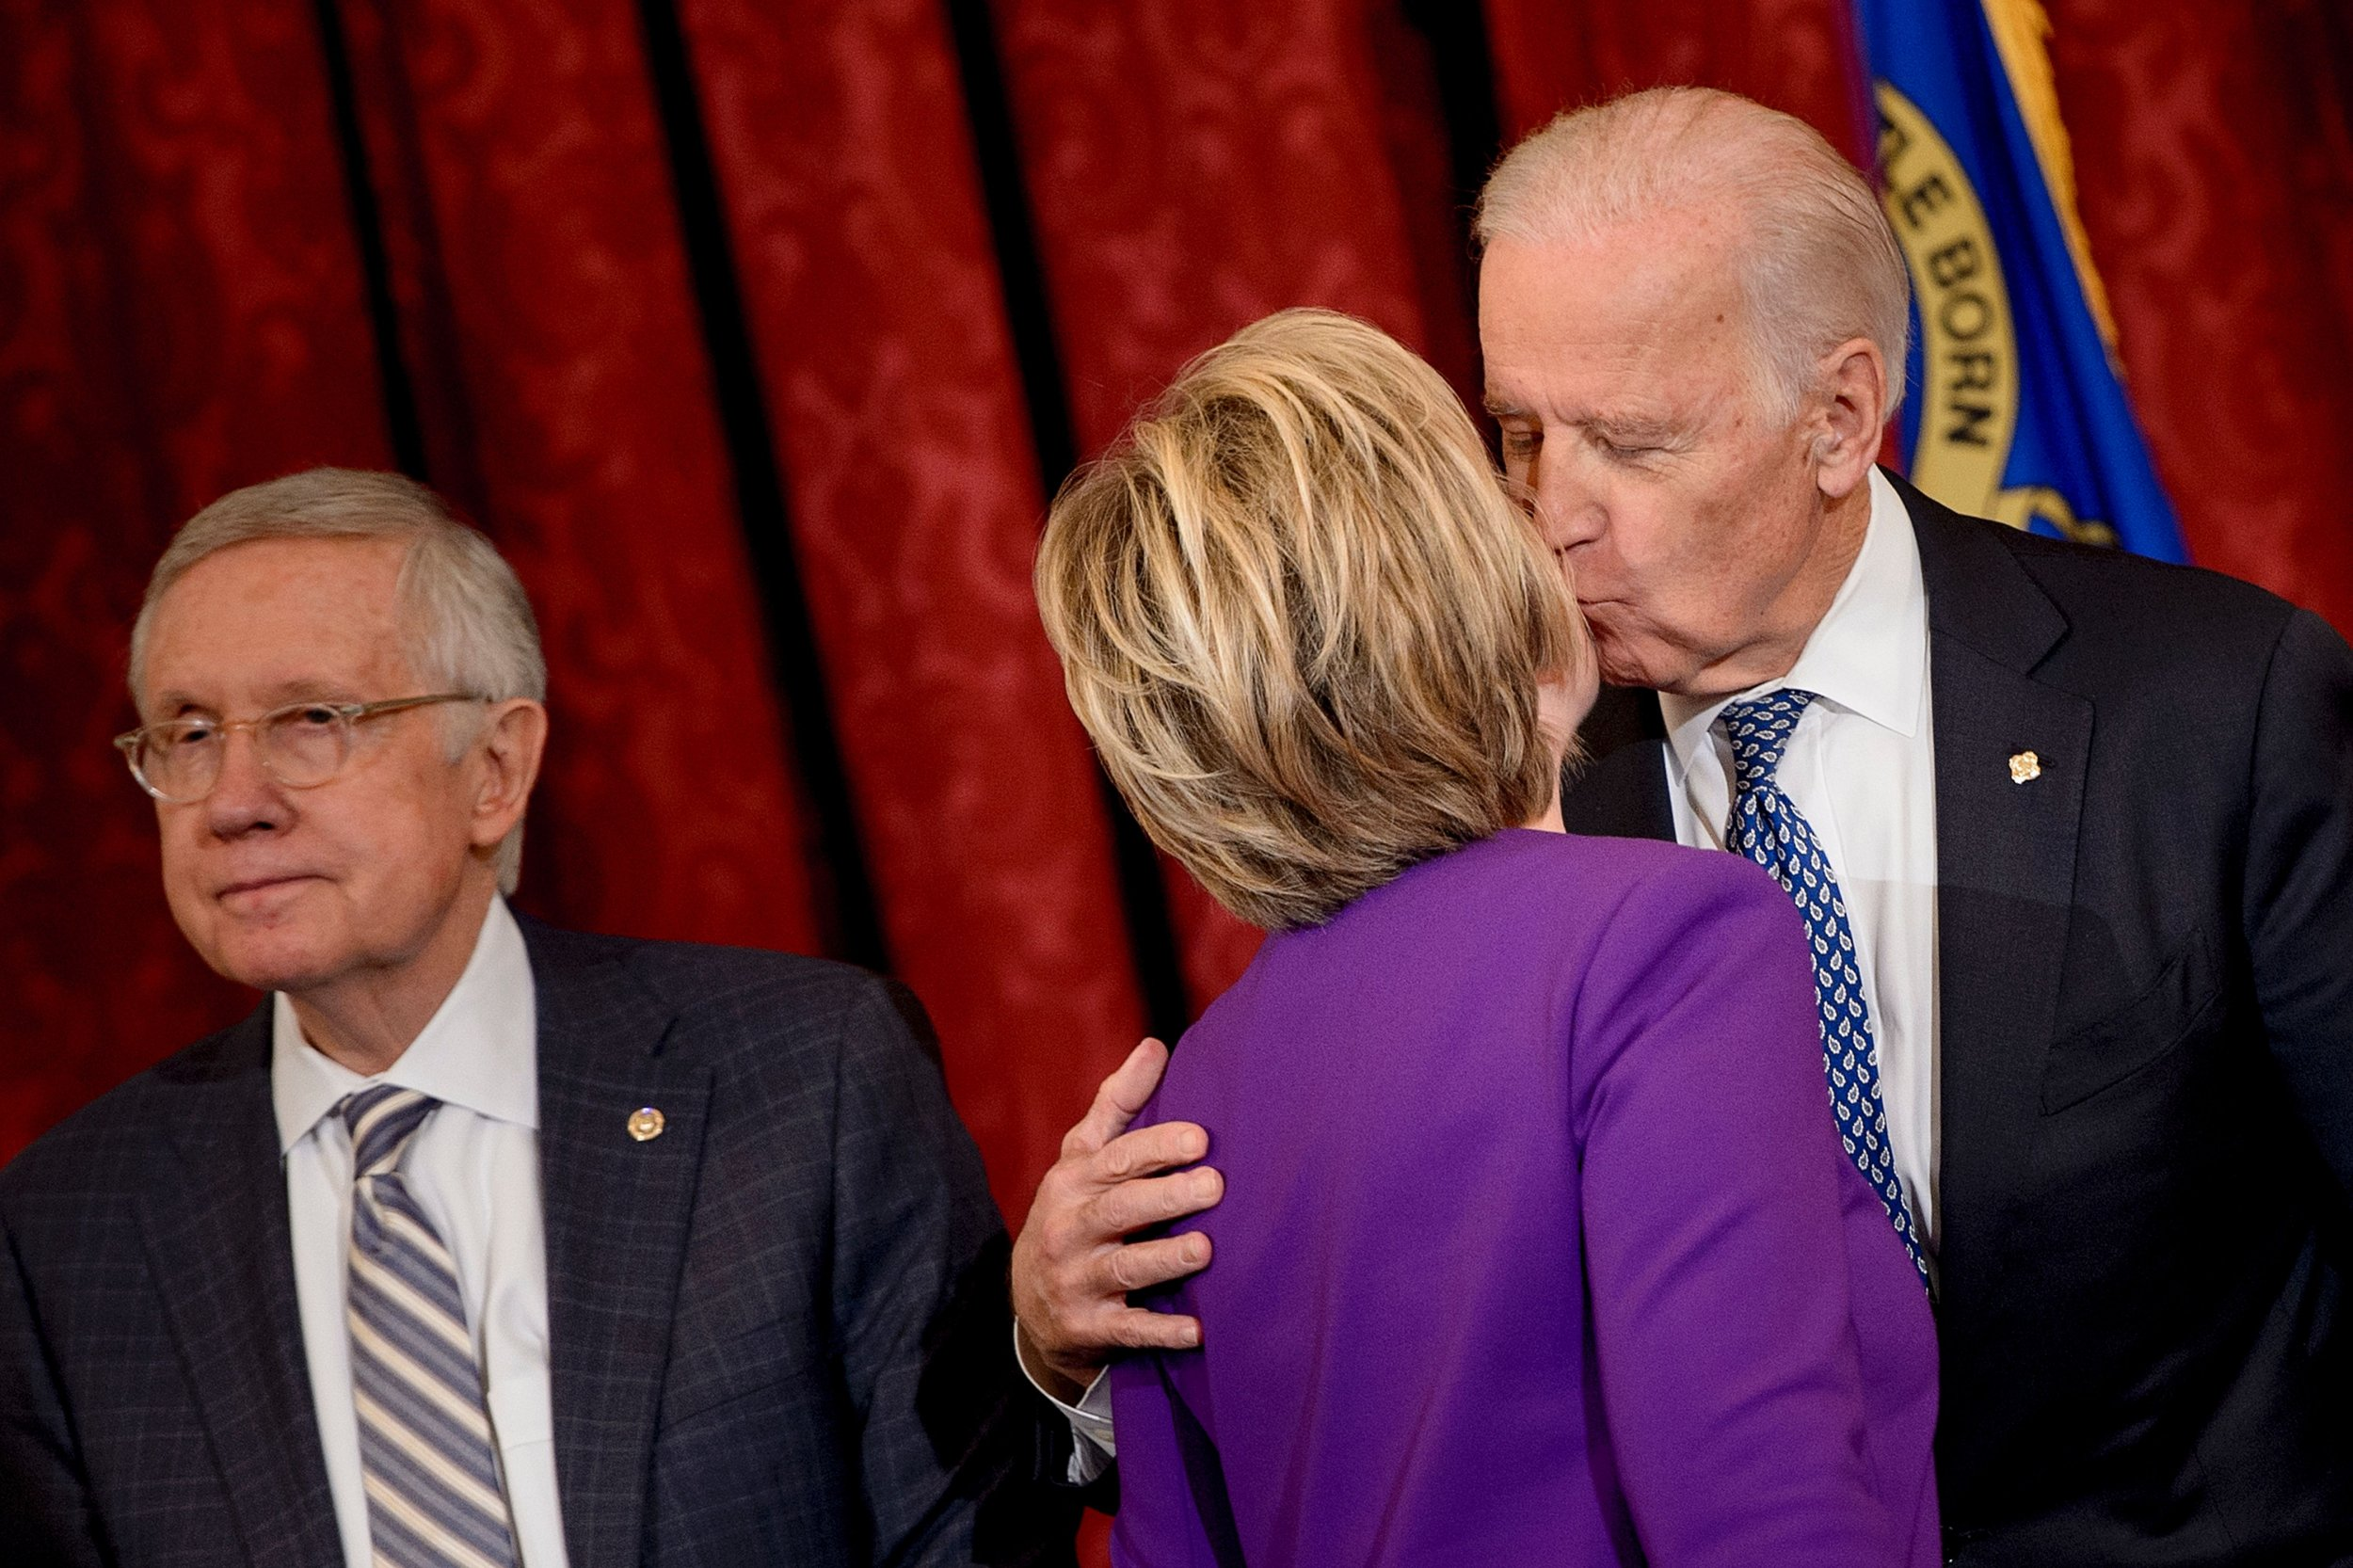 Joe Biden Accused Of Unwanted Kiss From Behind During Campaign Event While Vice President-2937